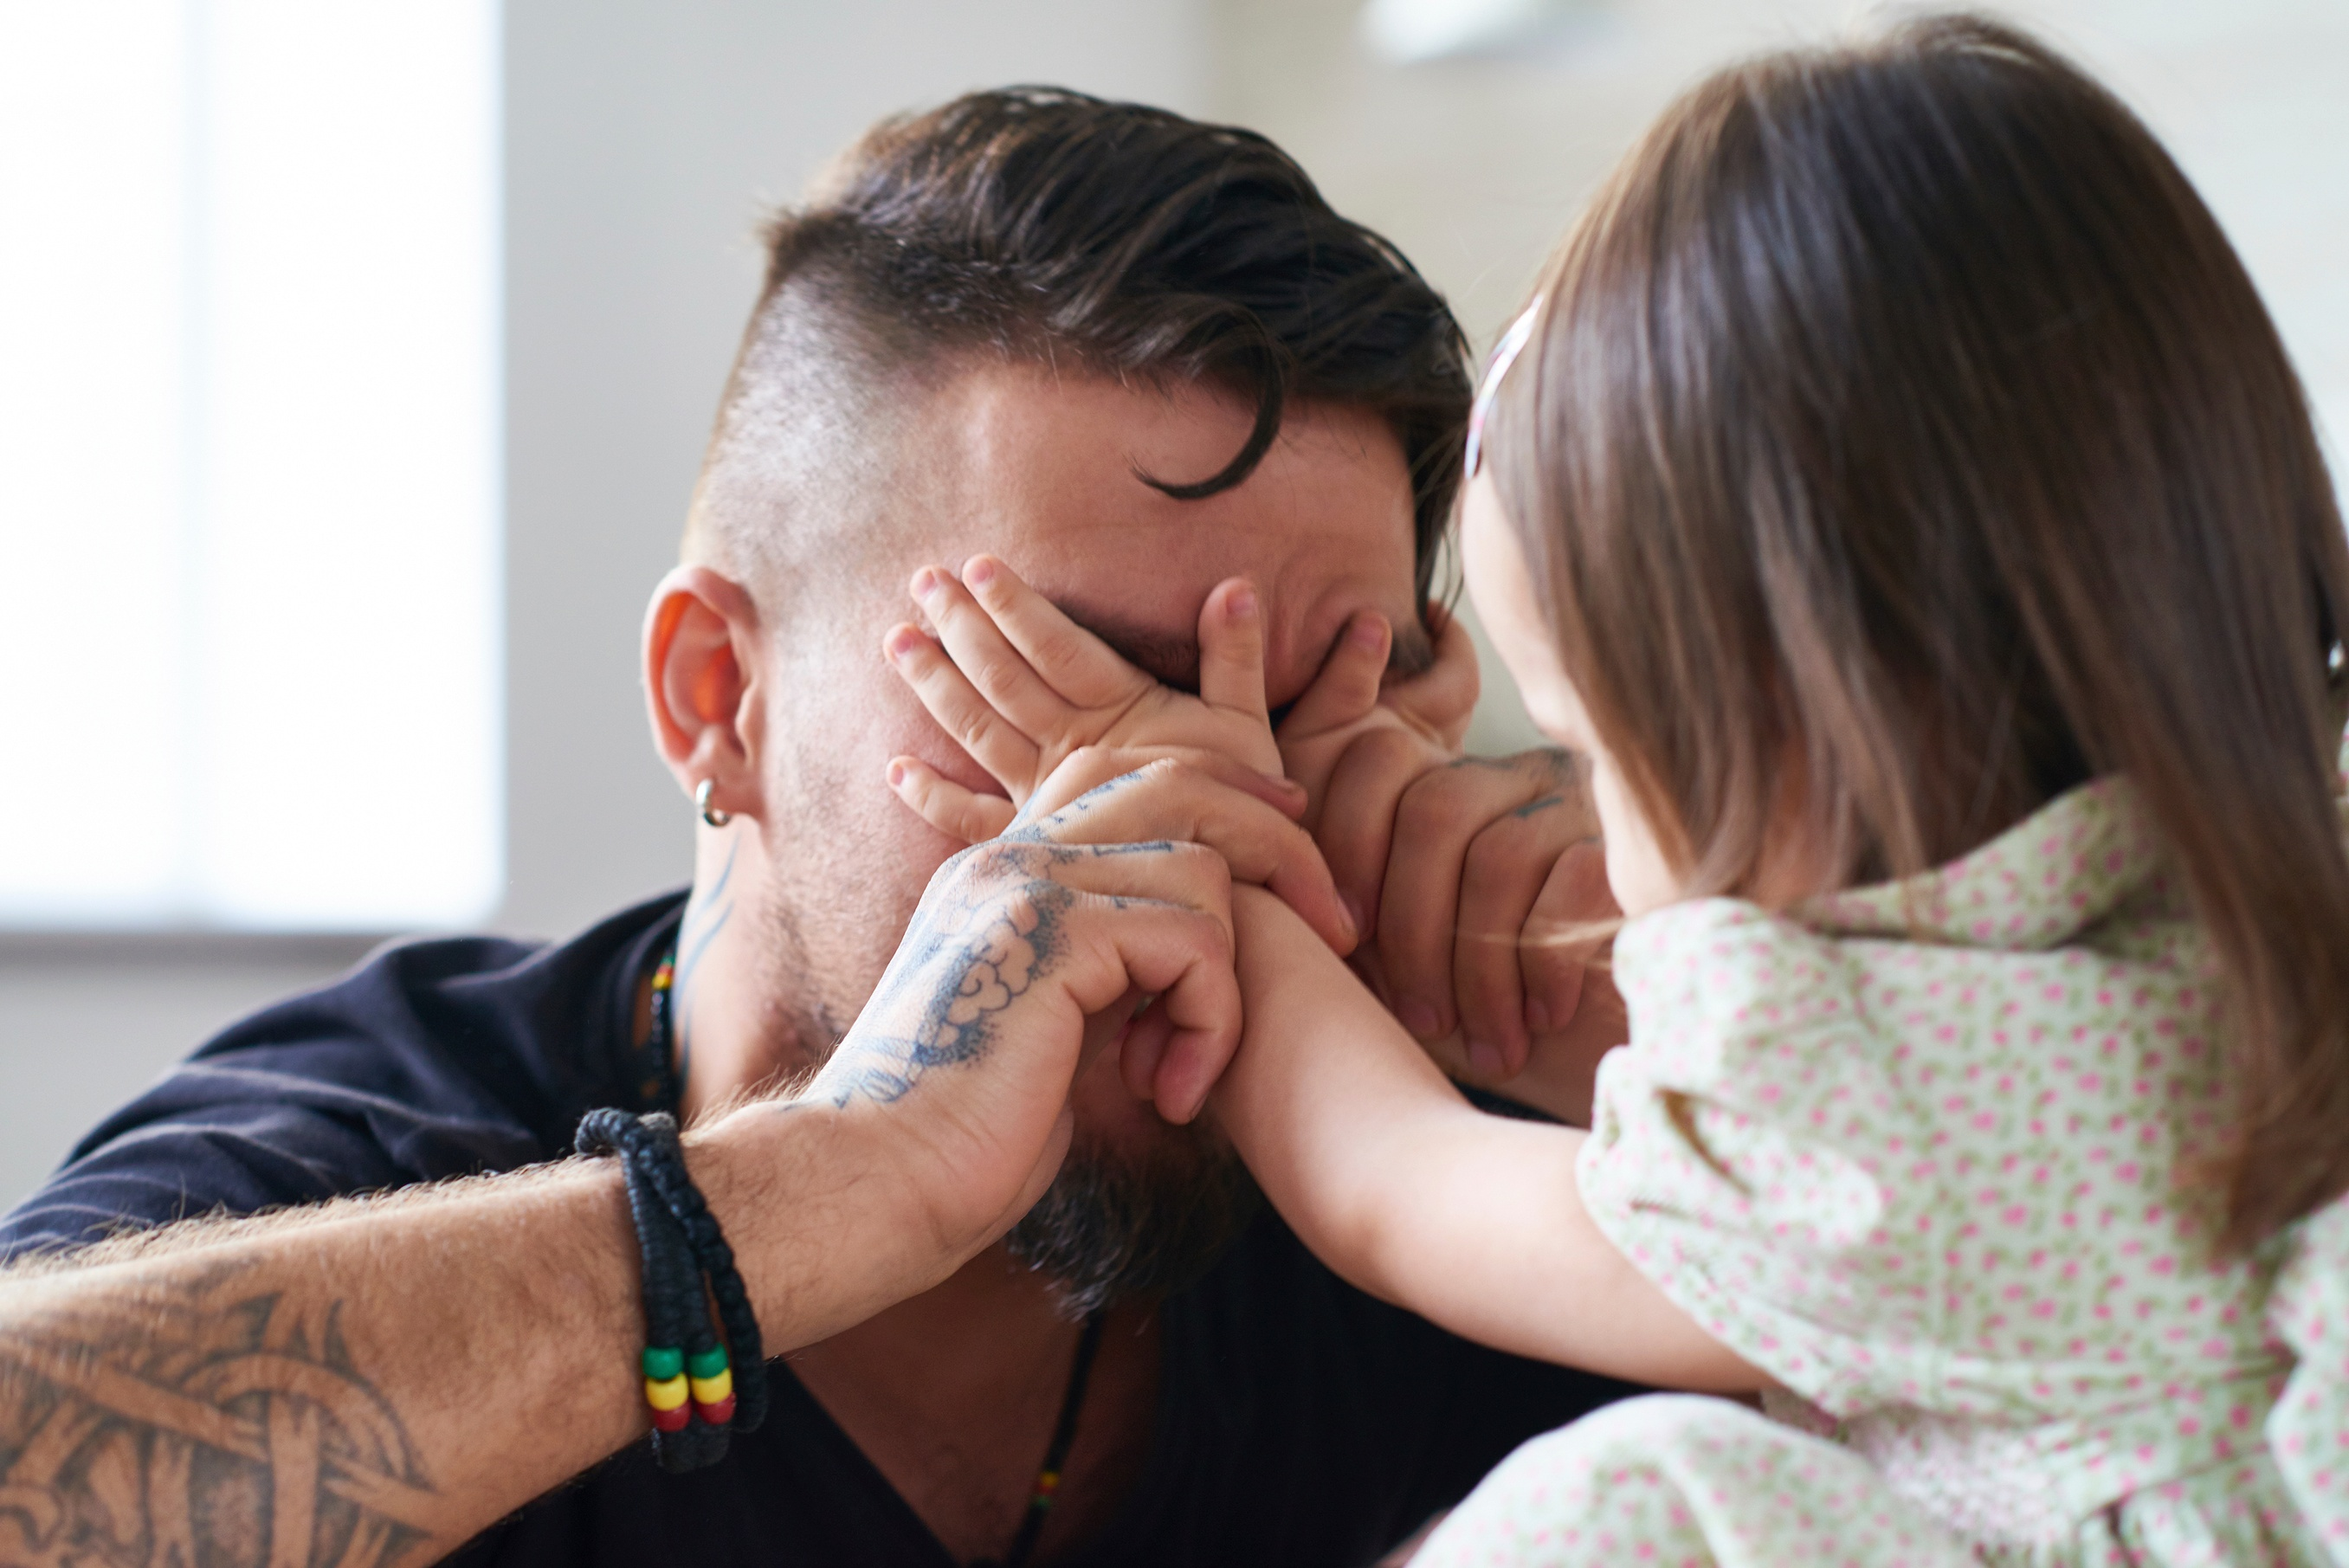 A father playing peek-a-boo with his toddler as a part of cognitive development